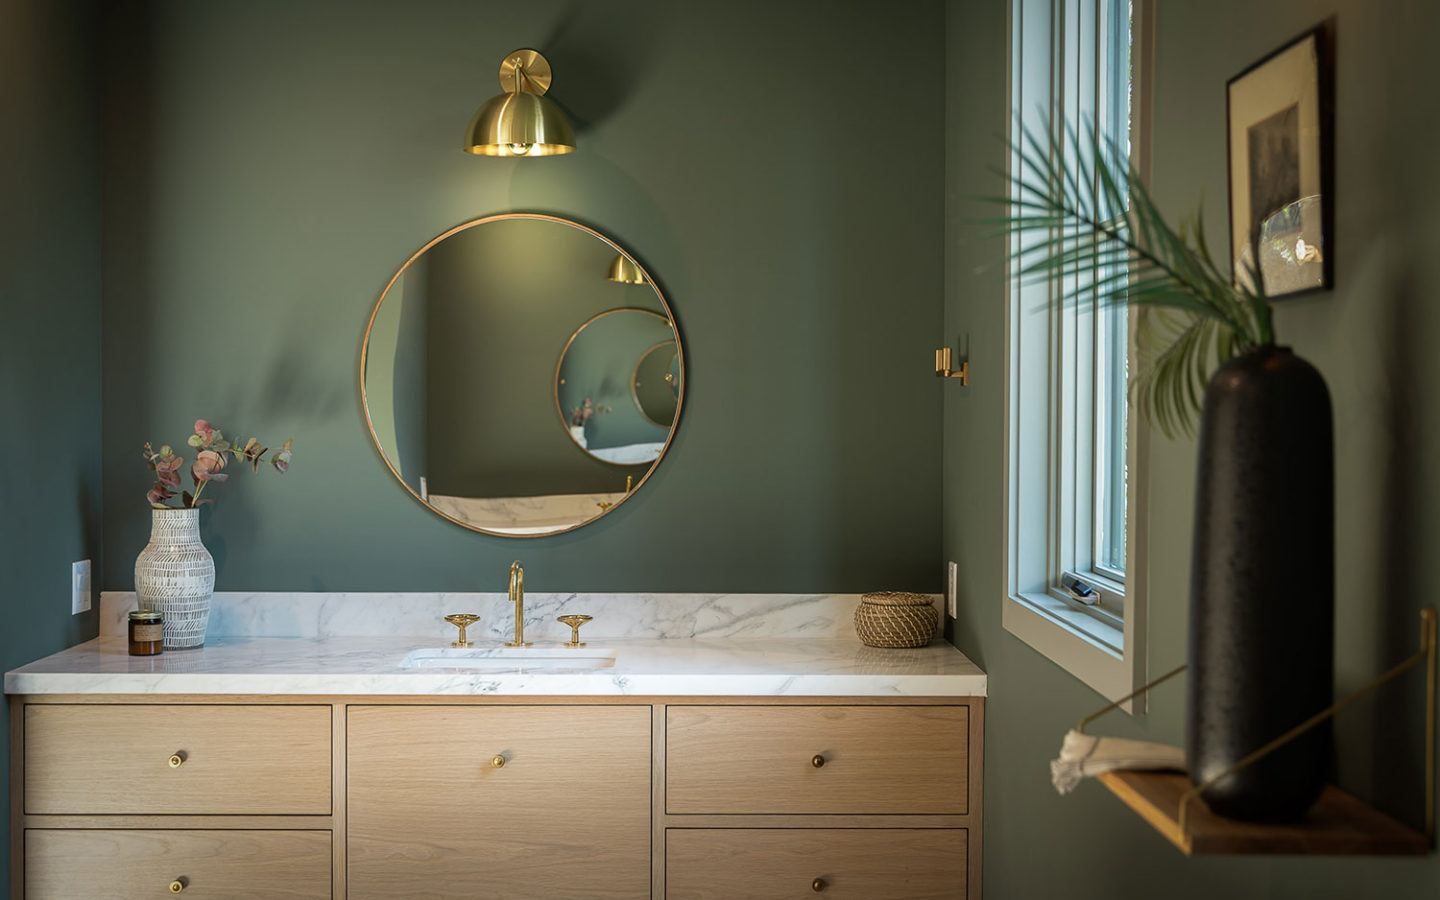 bathroom vanity with circular mirror and green walls